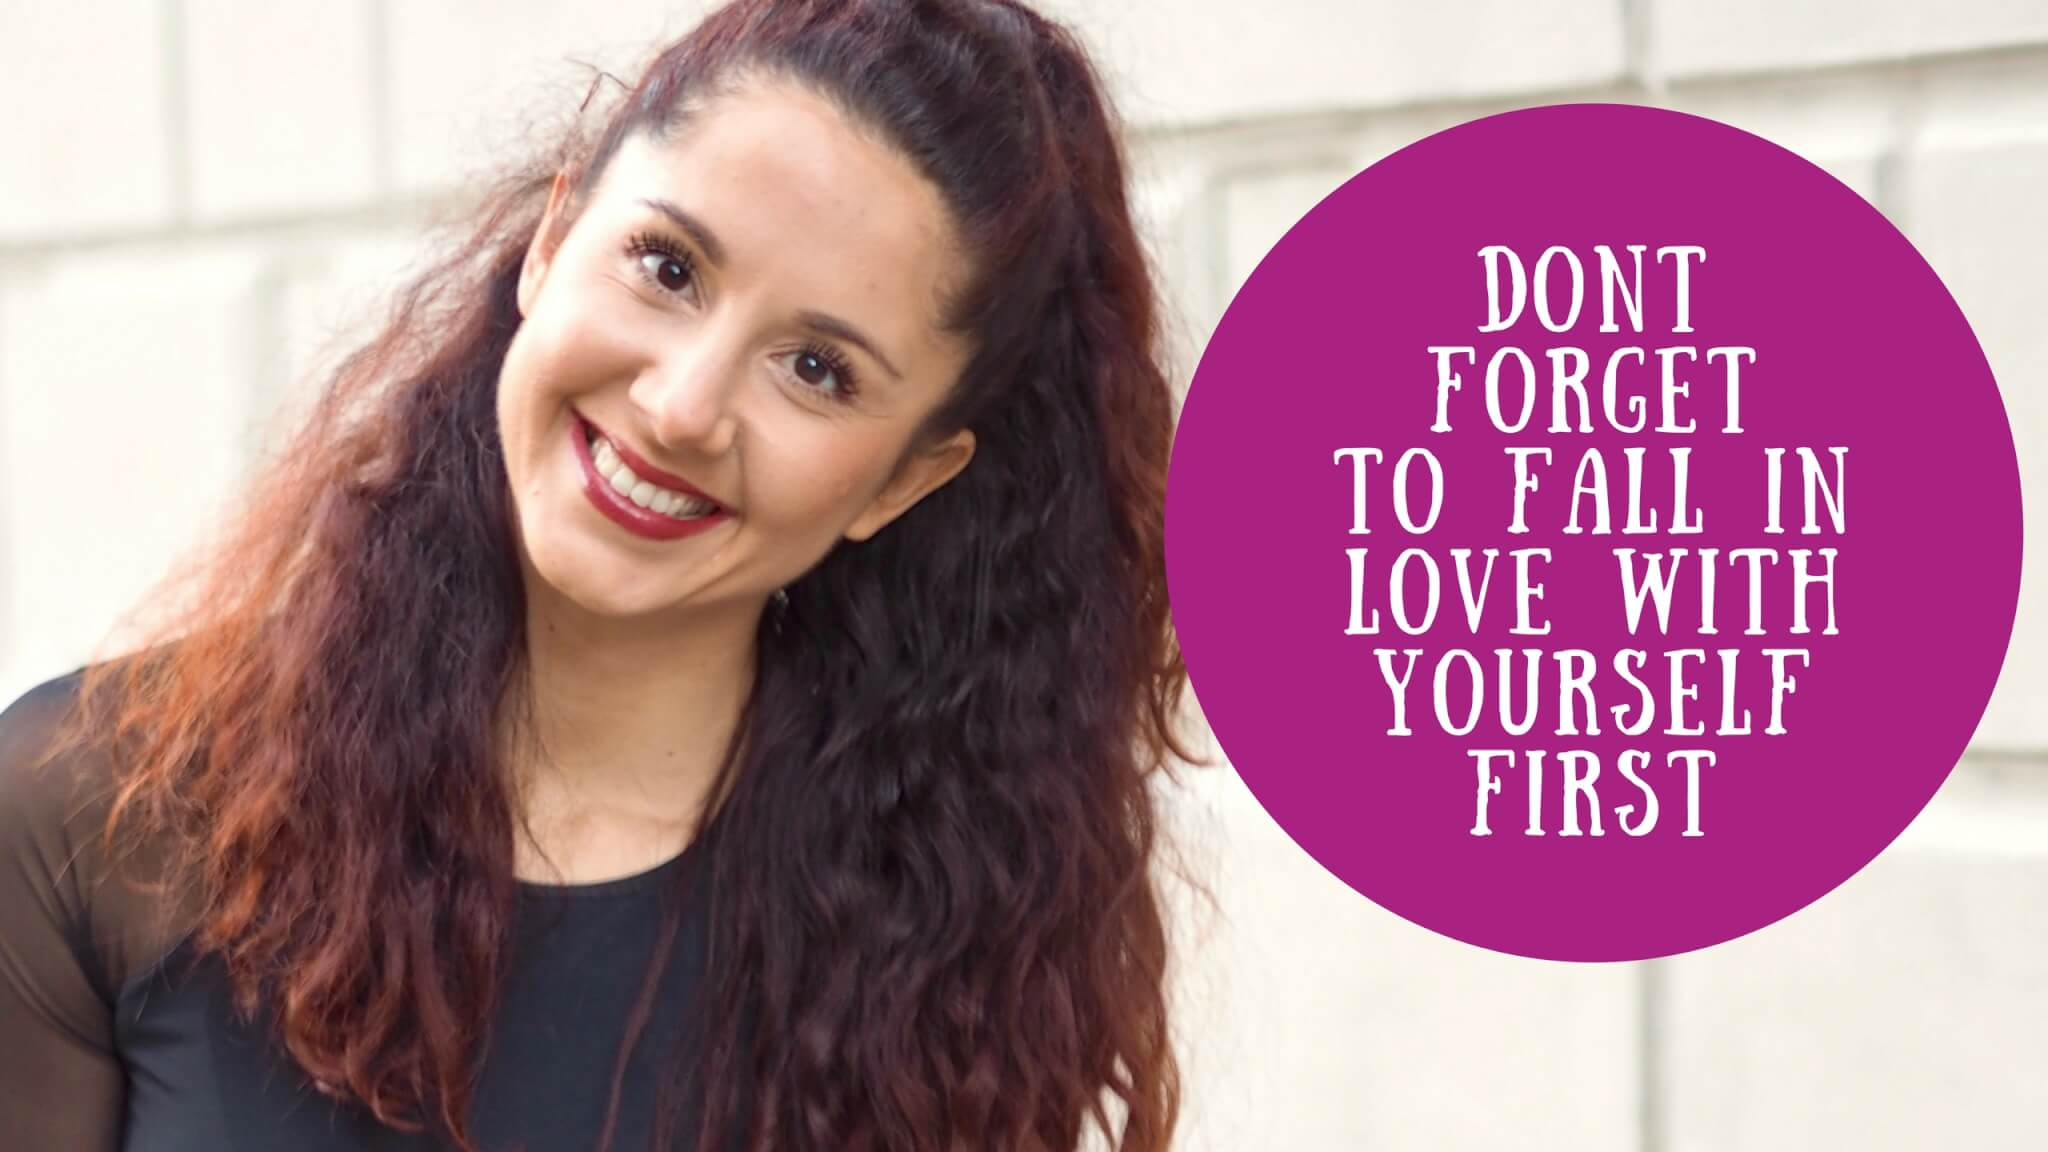 Maya Dont foregtto fall inlove with yourself first